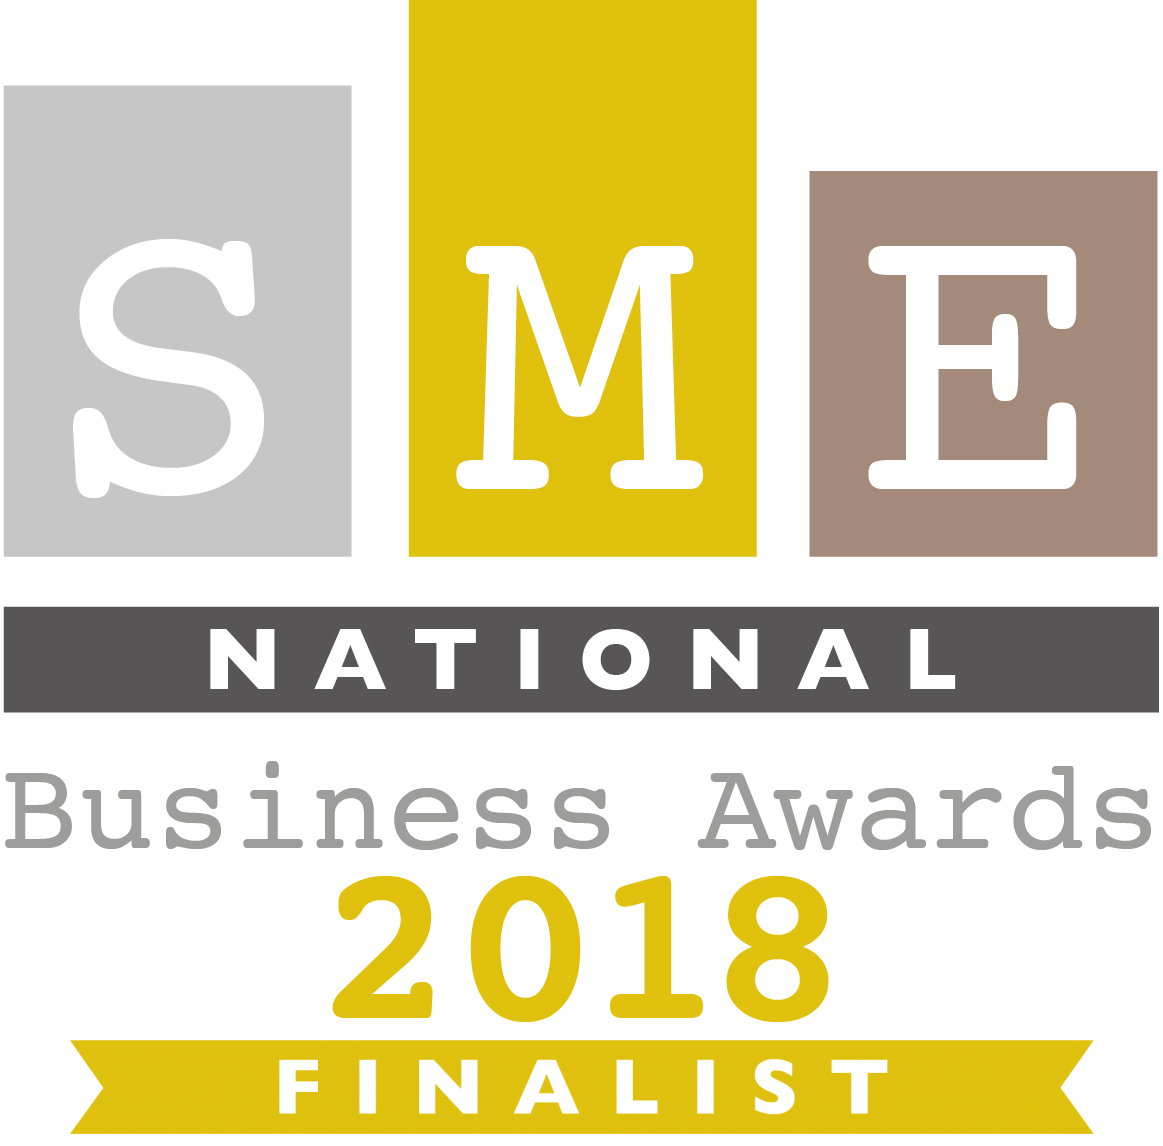 SME National Business Awards - High Growth Business of the Year: Finalist